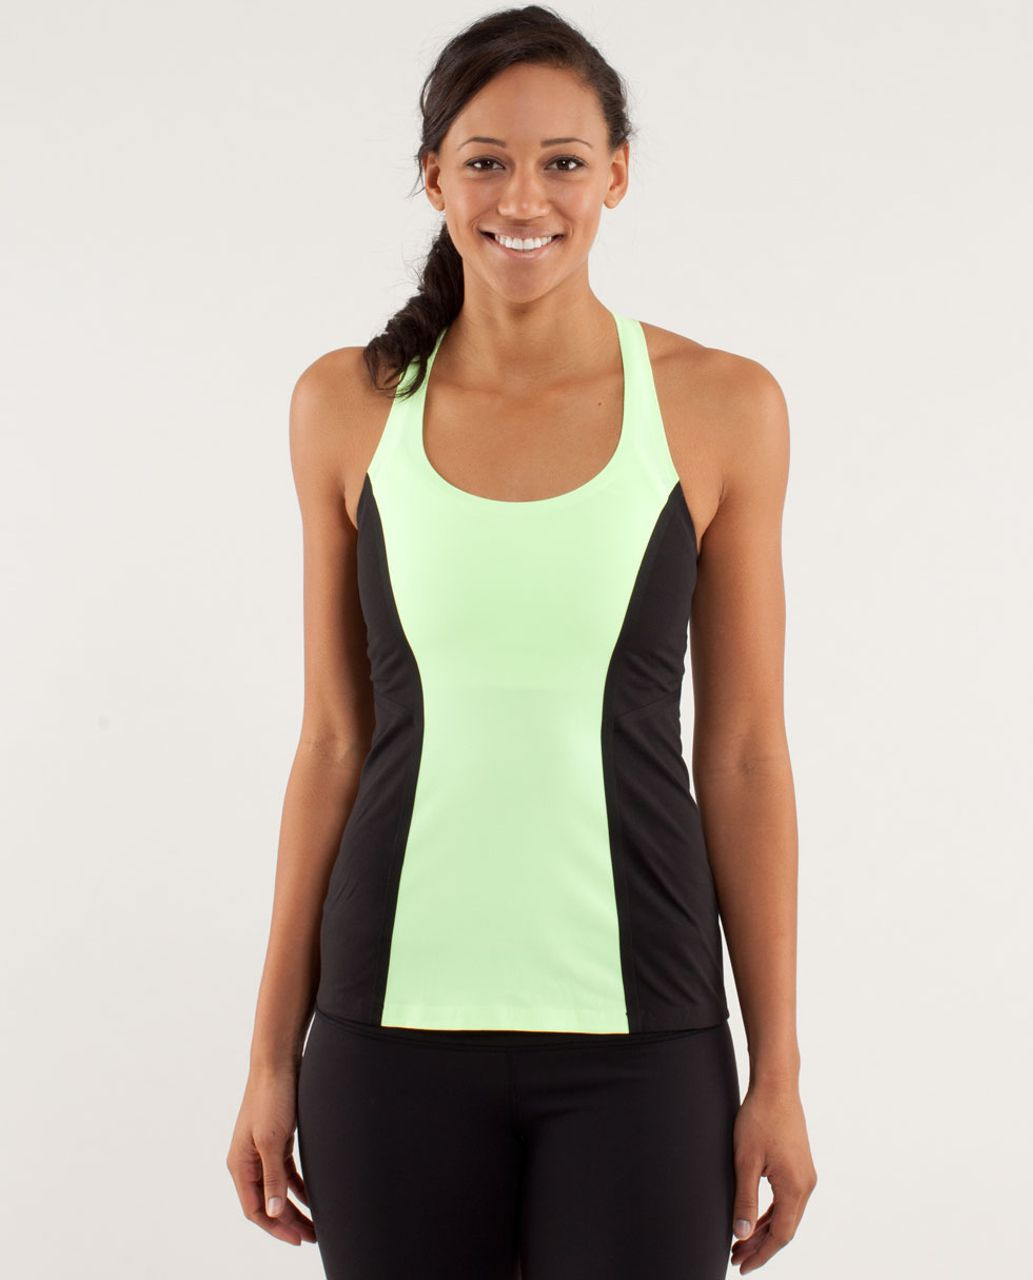 Lululemon Cool Racerback *Surf Bonded - Faded Zap / Black